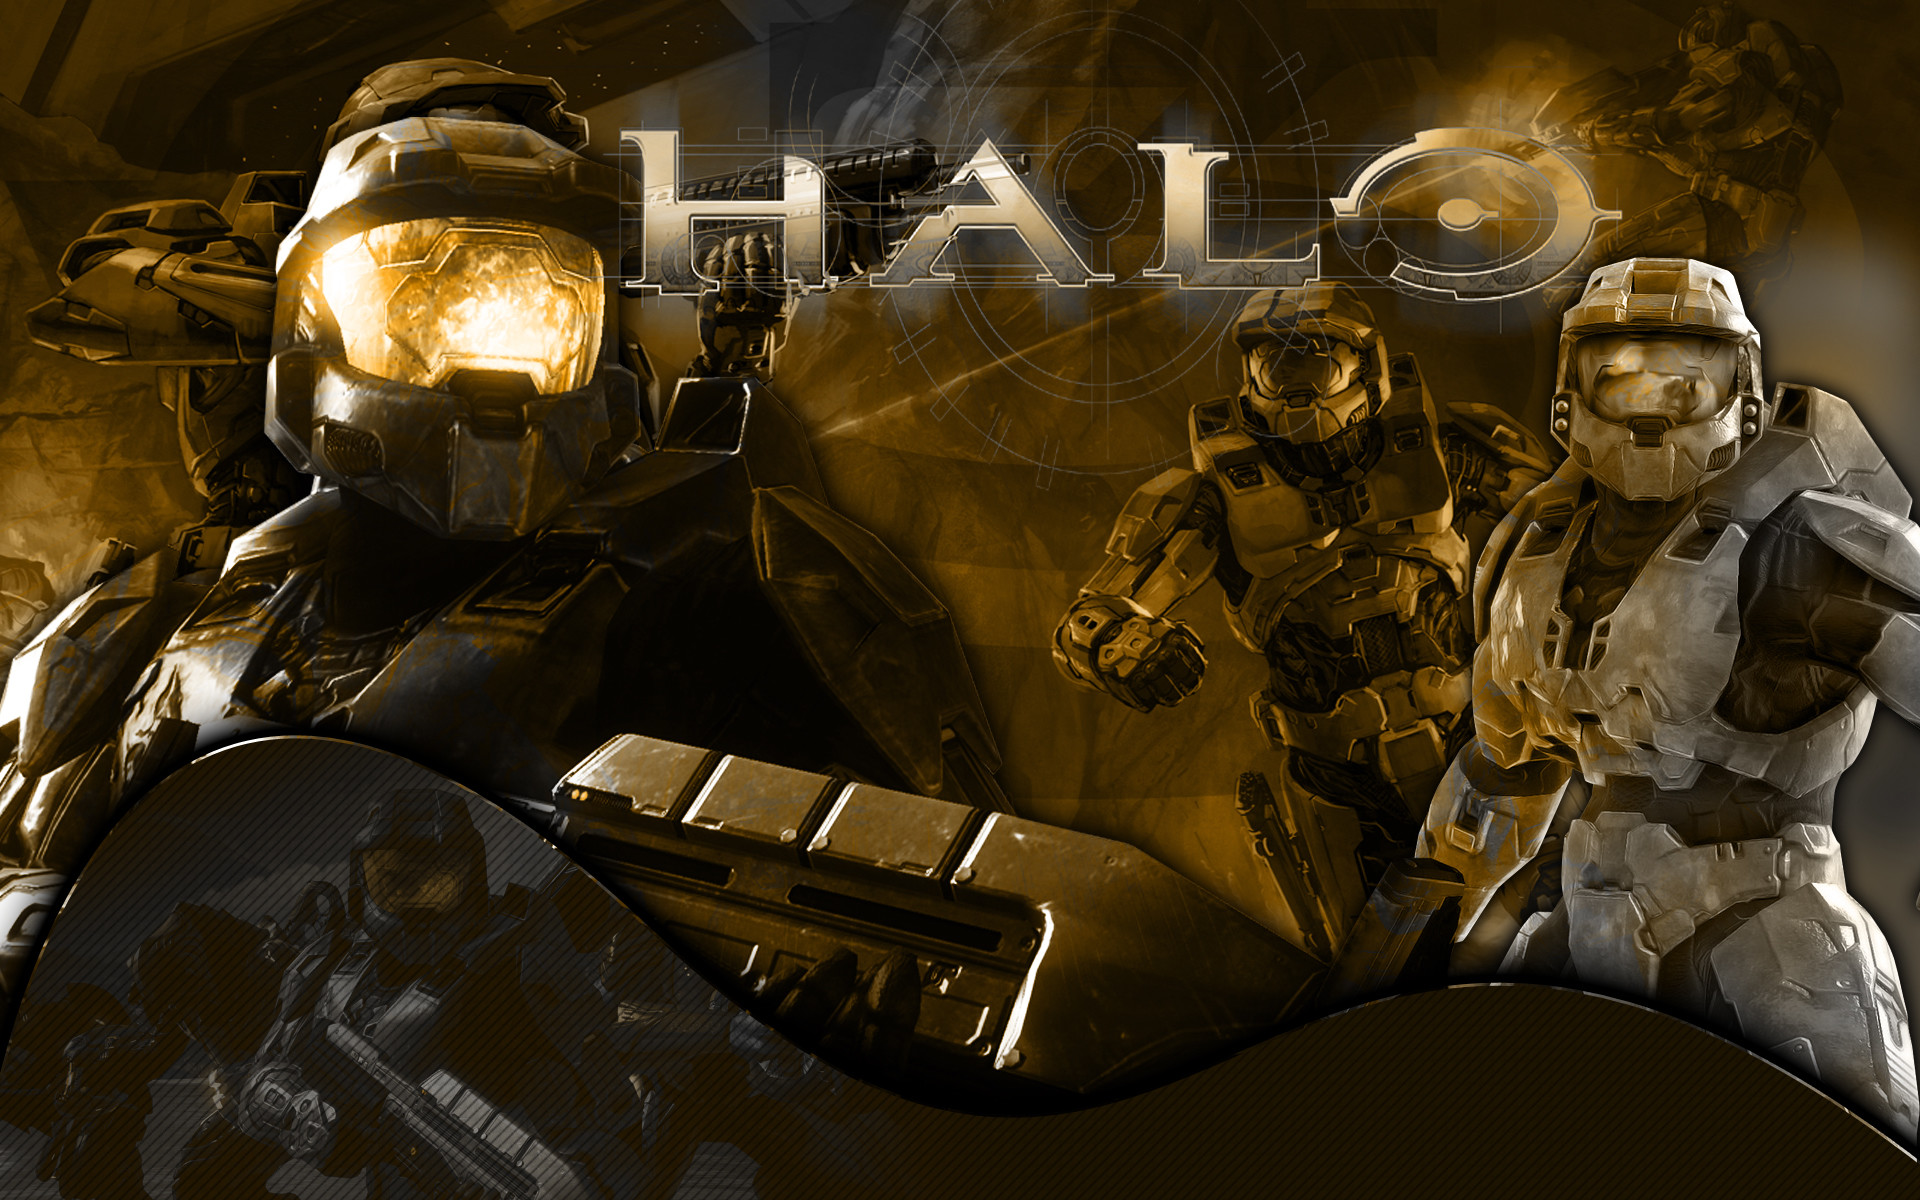 1920x1200 Cool Halo 3 Wallpaper